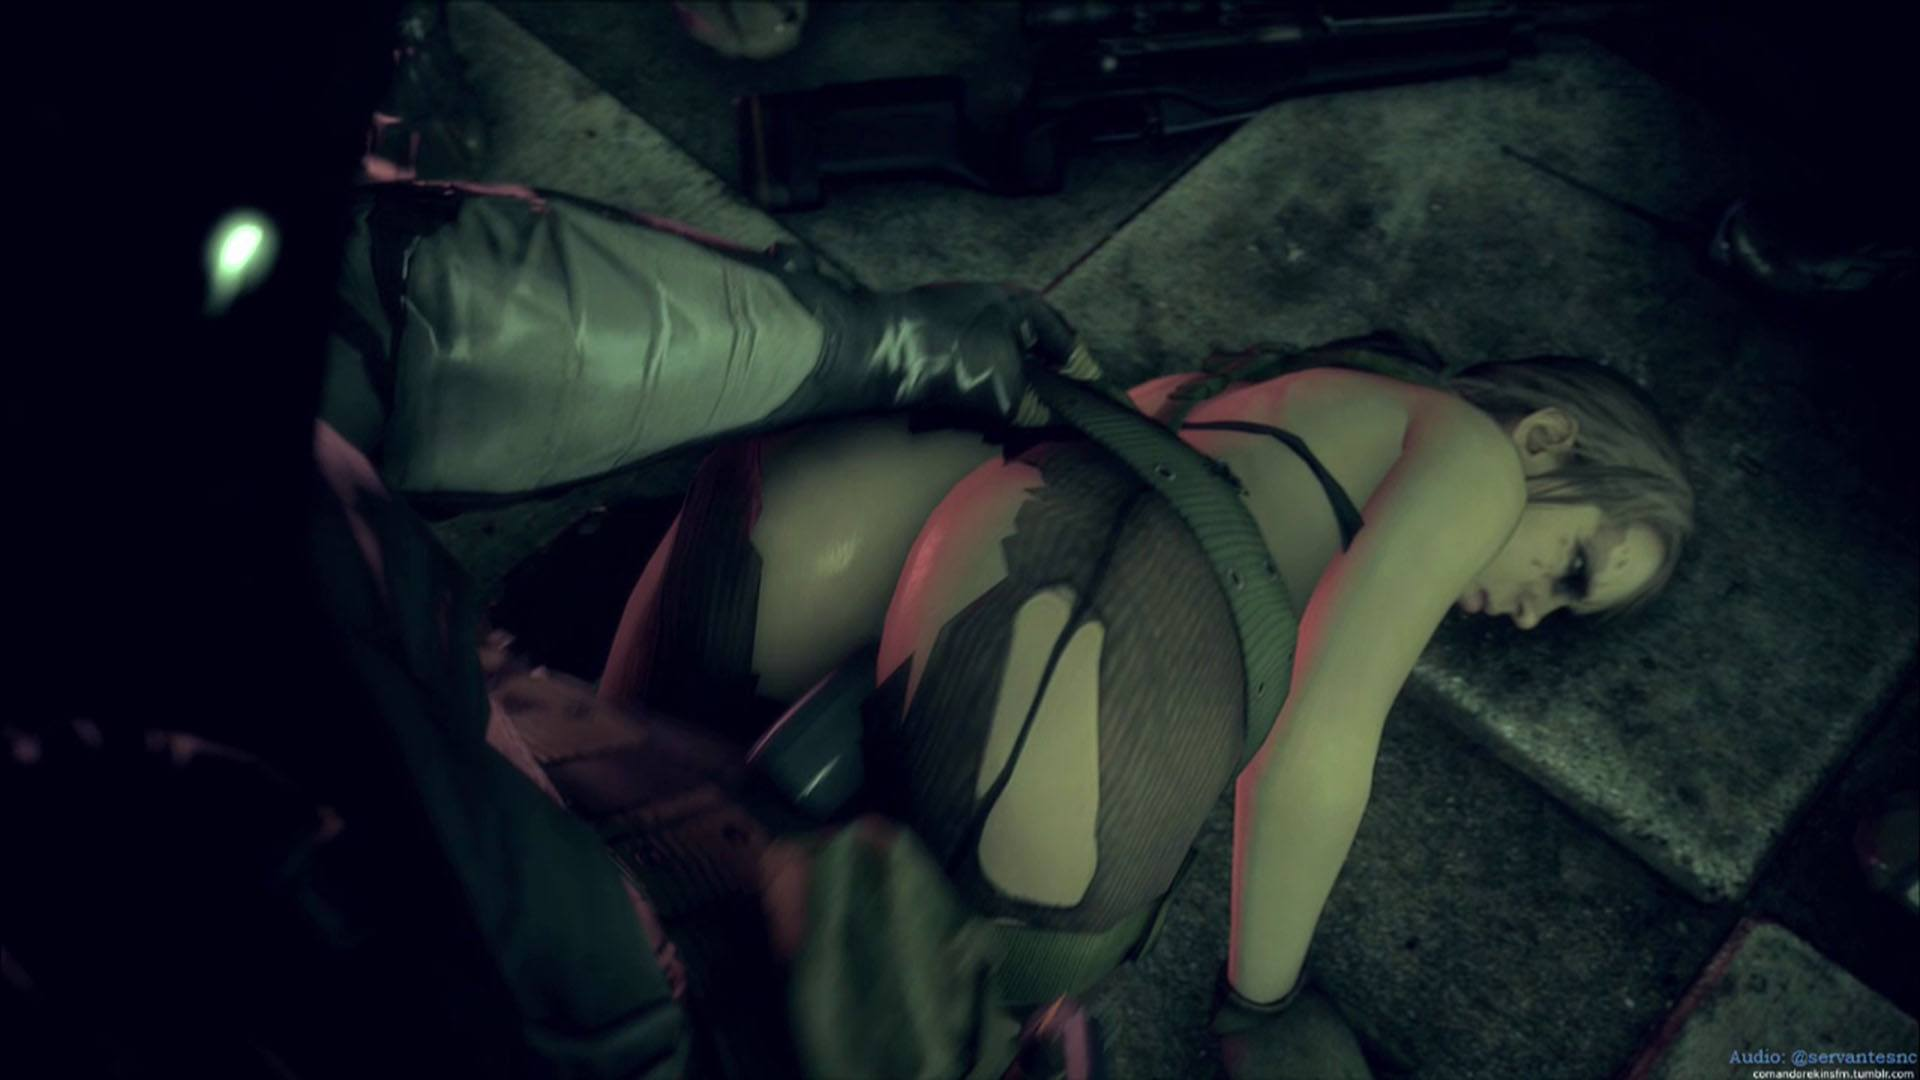 quiet needs to work on her stealth - vr porn video - vrporn